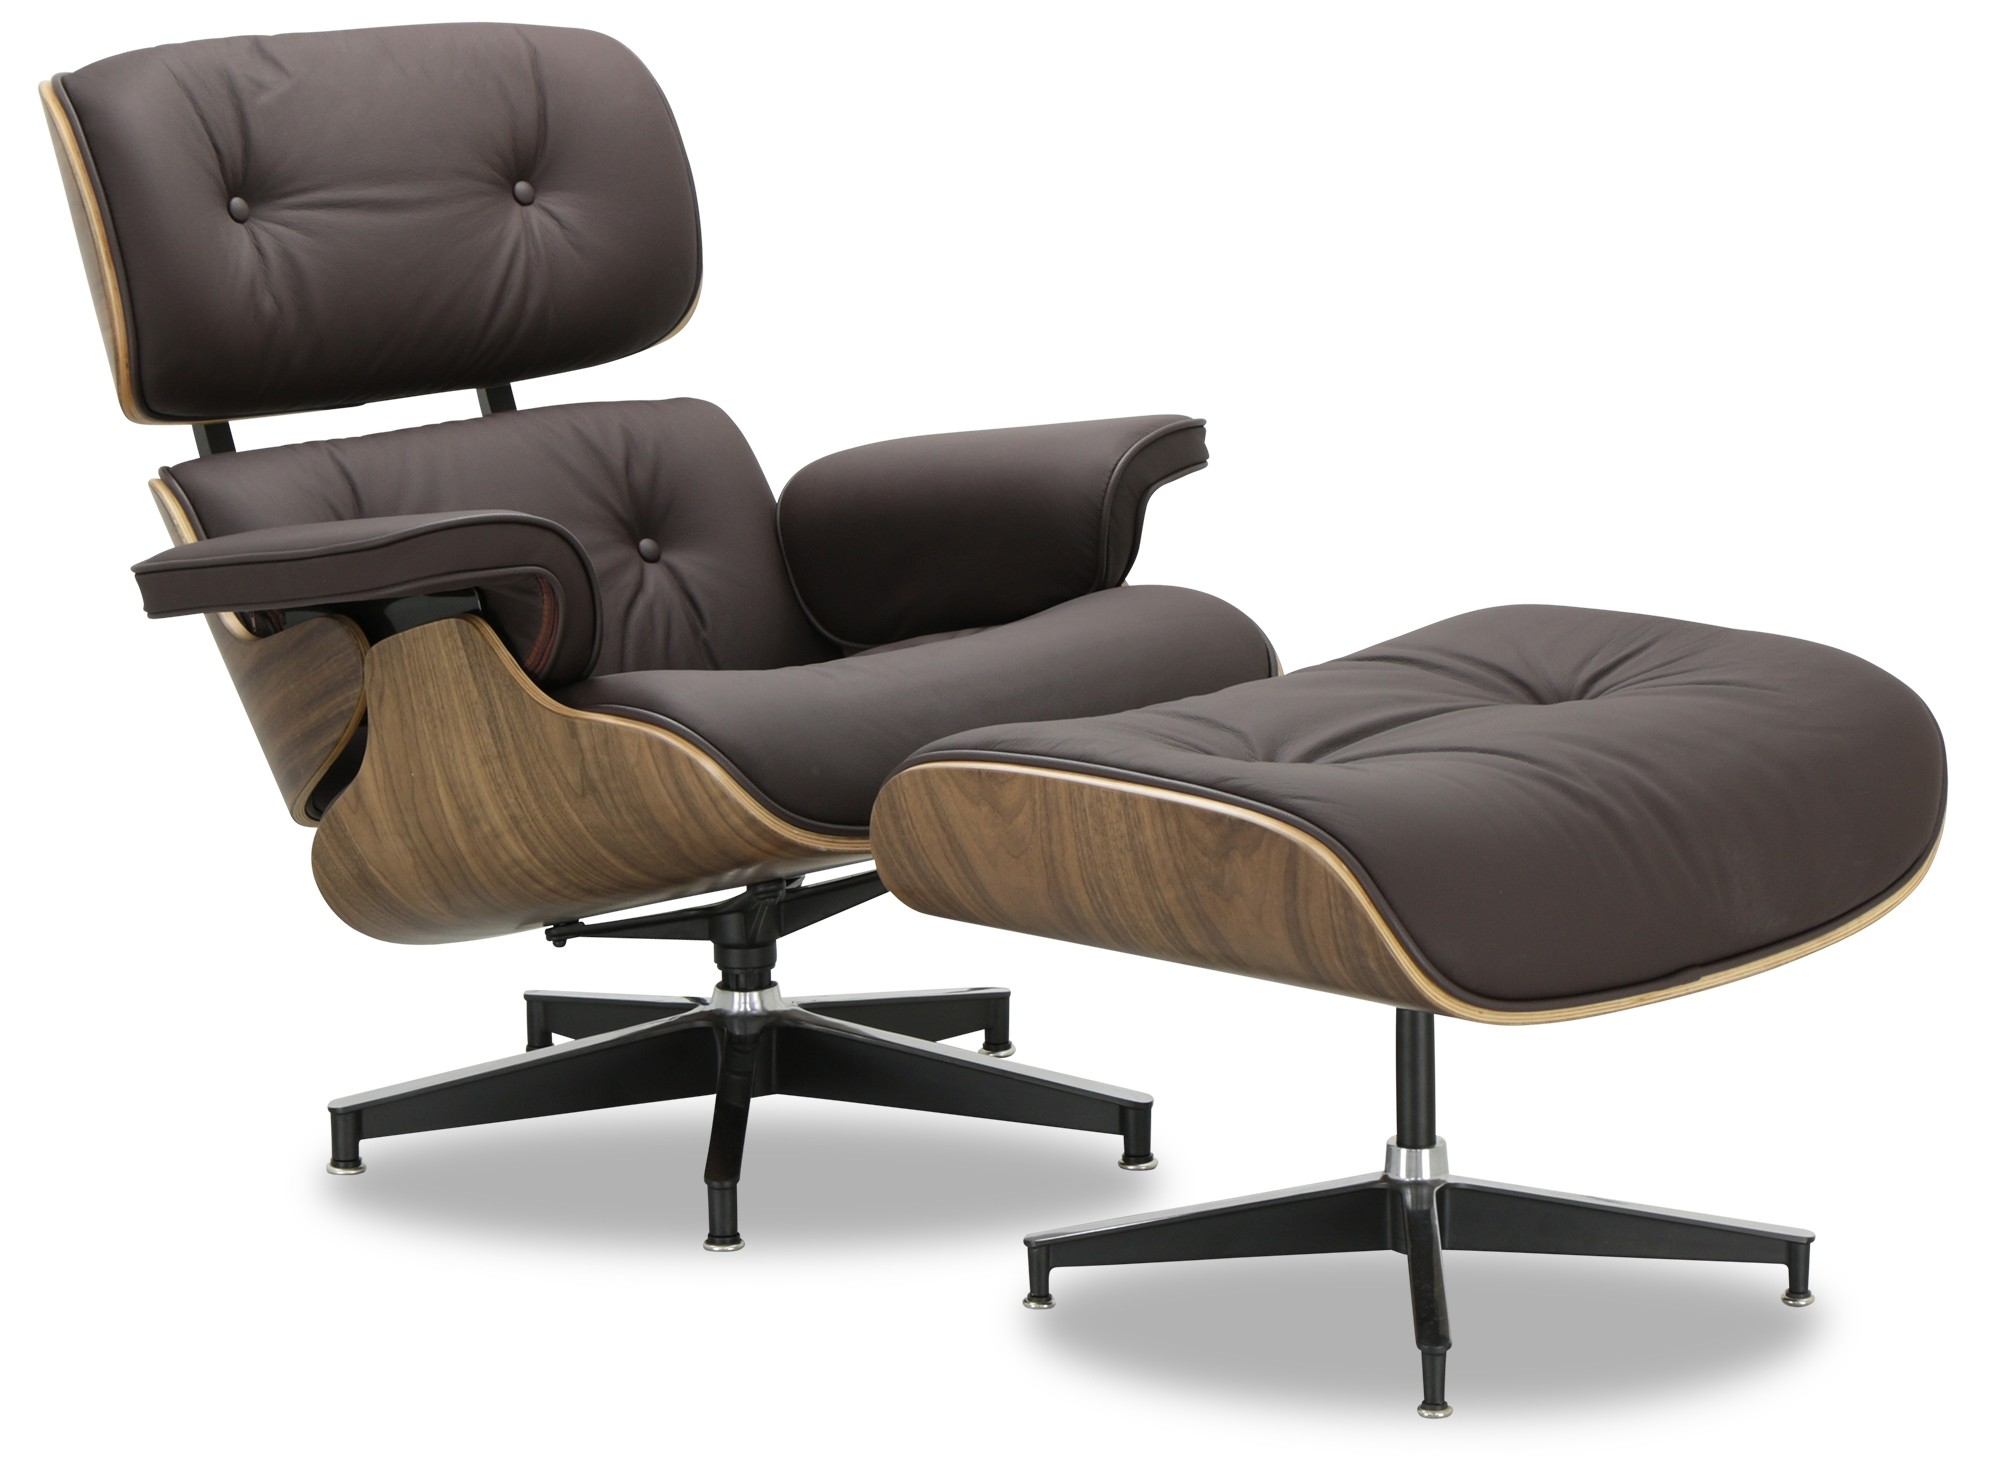 Designer Replica Eames Lounge Chair  Dark Brown Leather